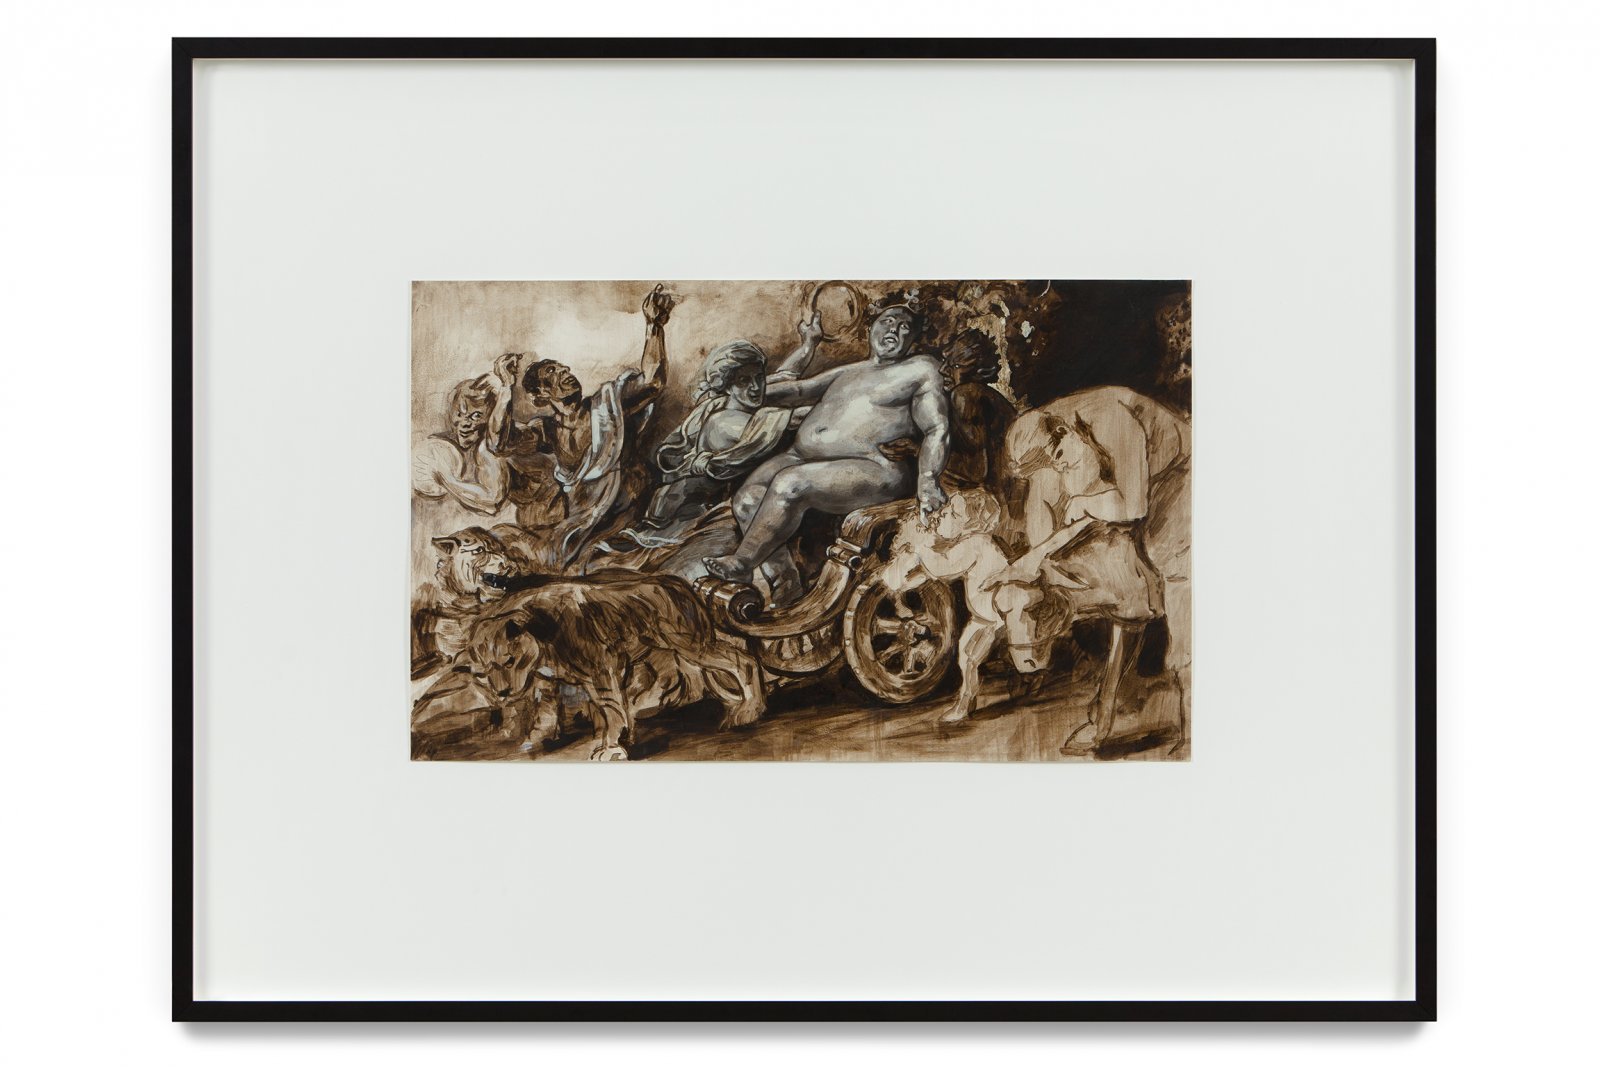 Damian Moppett, The Triumph of Bacchus (After Rubens), 2002, oil on paper, 29 x 38 in. (77 x 97 cm) by Damian Moppett